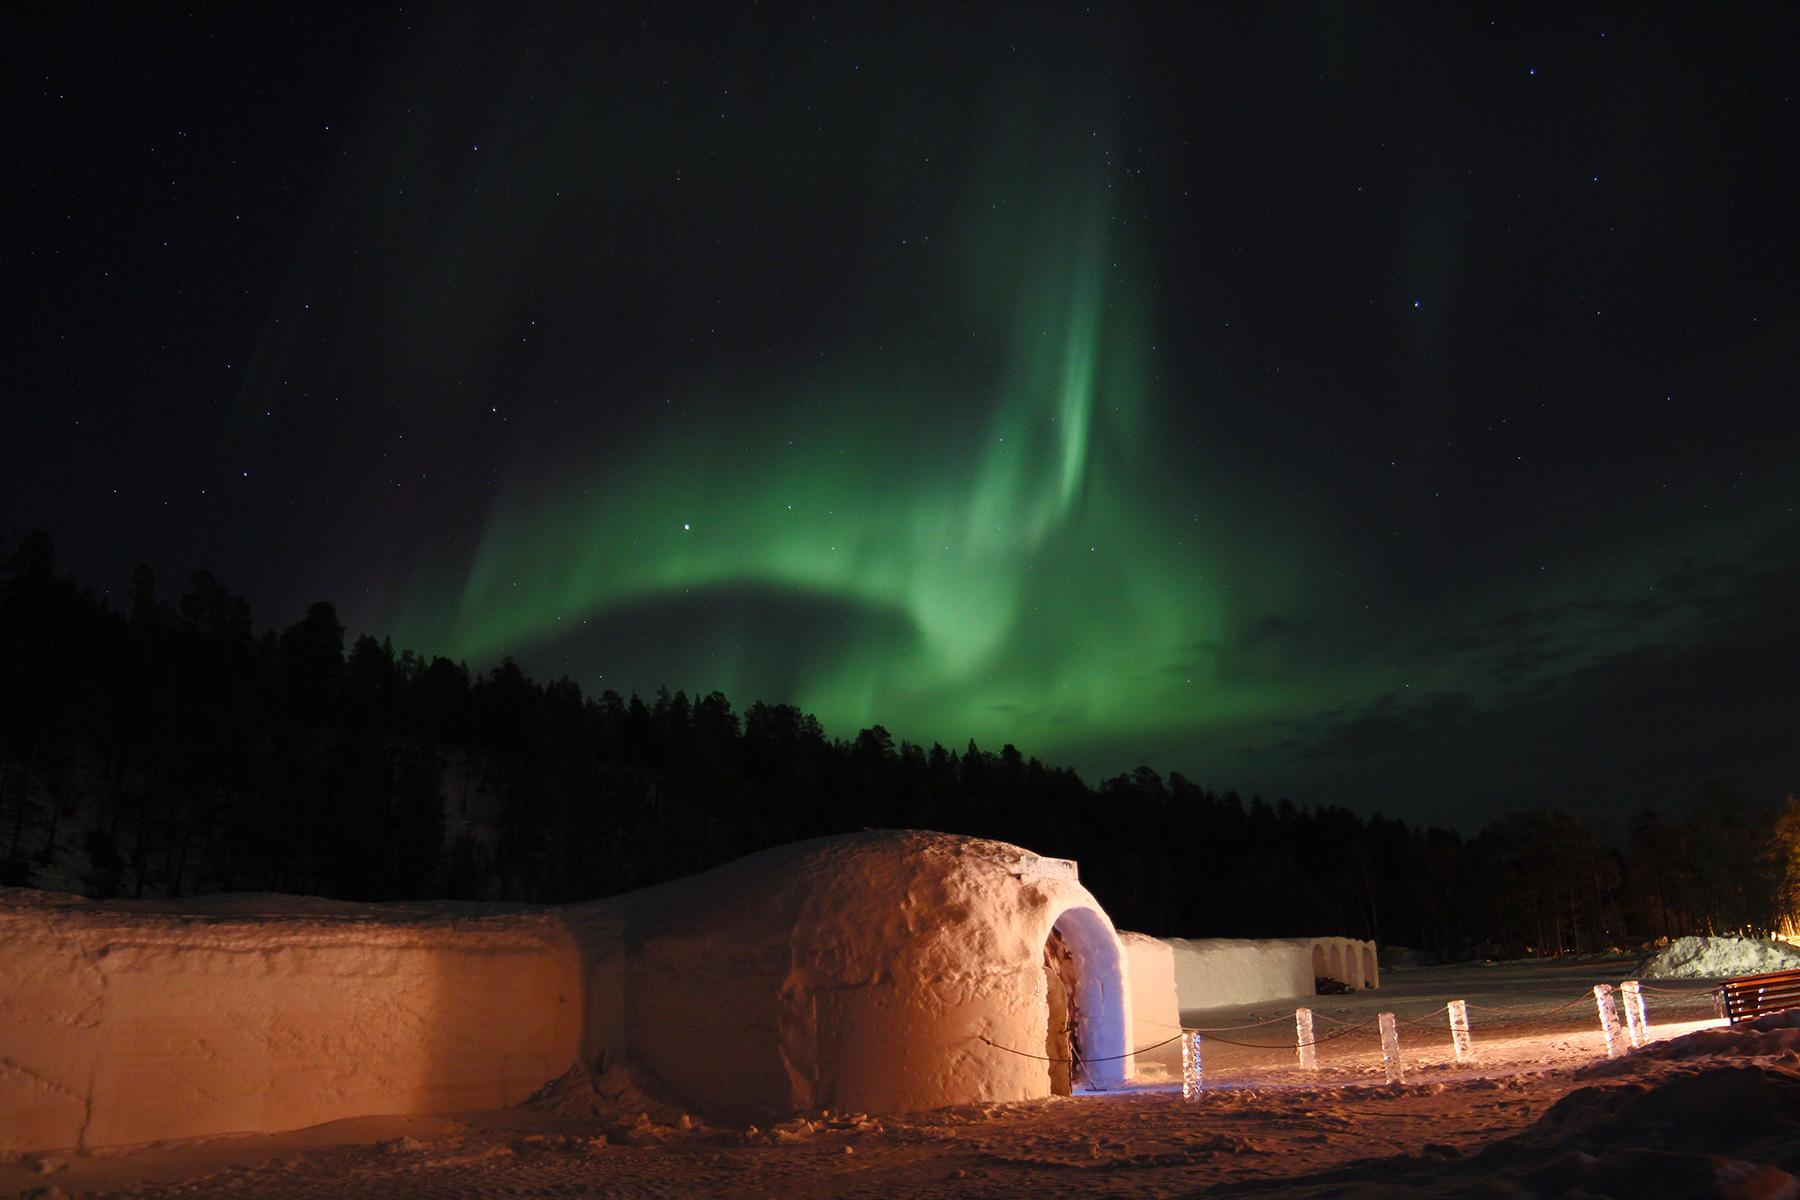 09_IceHotels__SorrisnivaIglooHotel_Northern-light----Igloo-Hotel